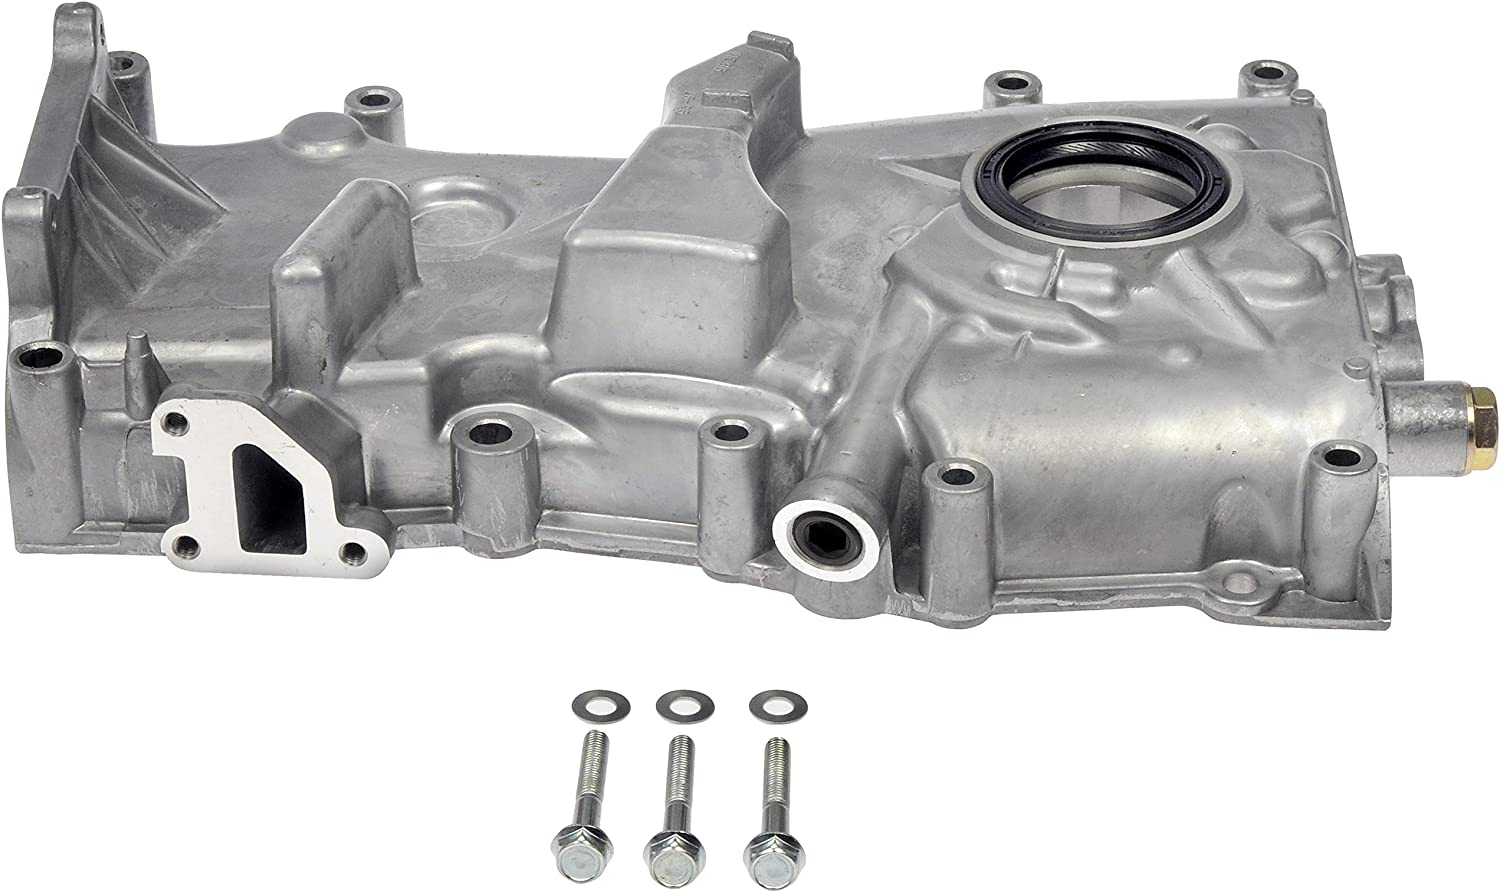 DORMAN 635-206 5 ☆ very popular ! Super beauty product restock quality top! Cover Timing